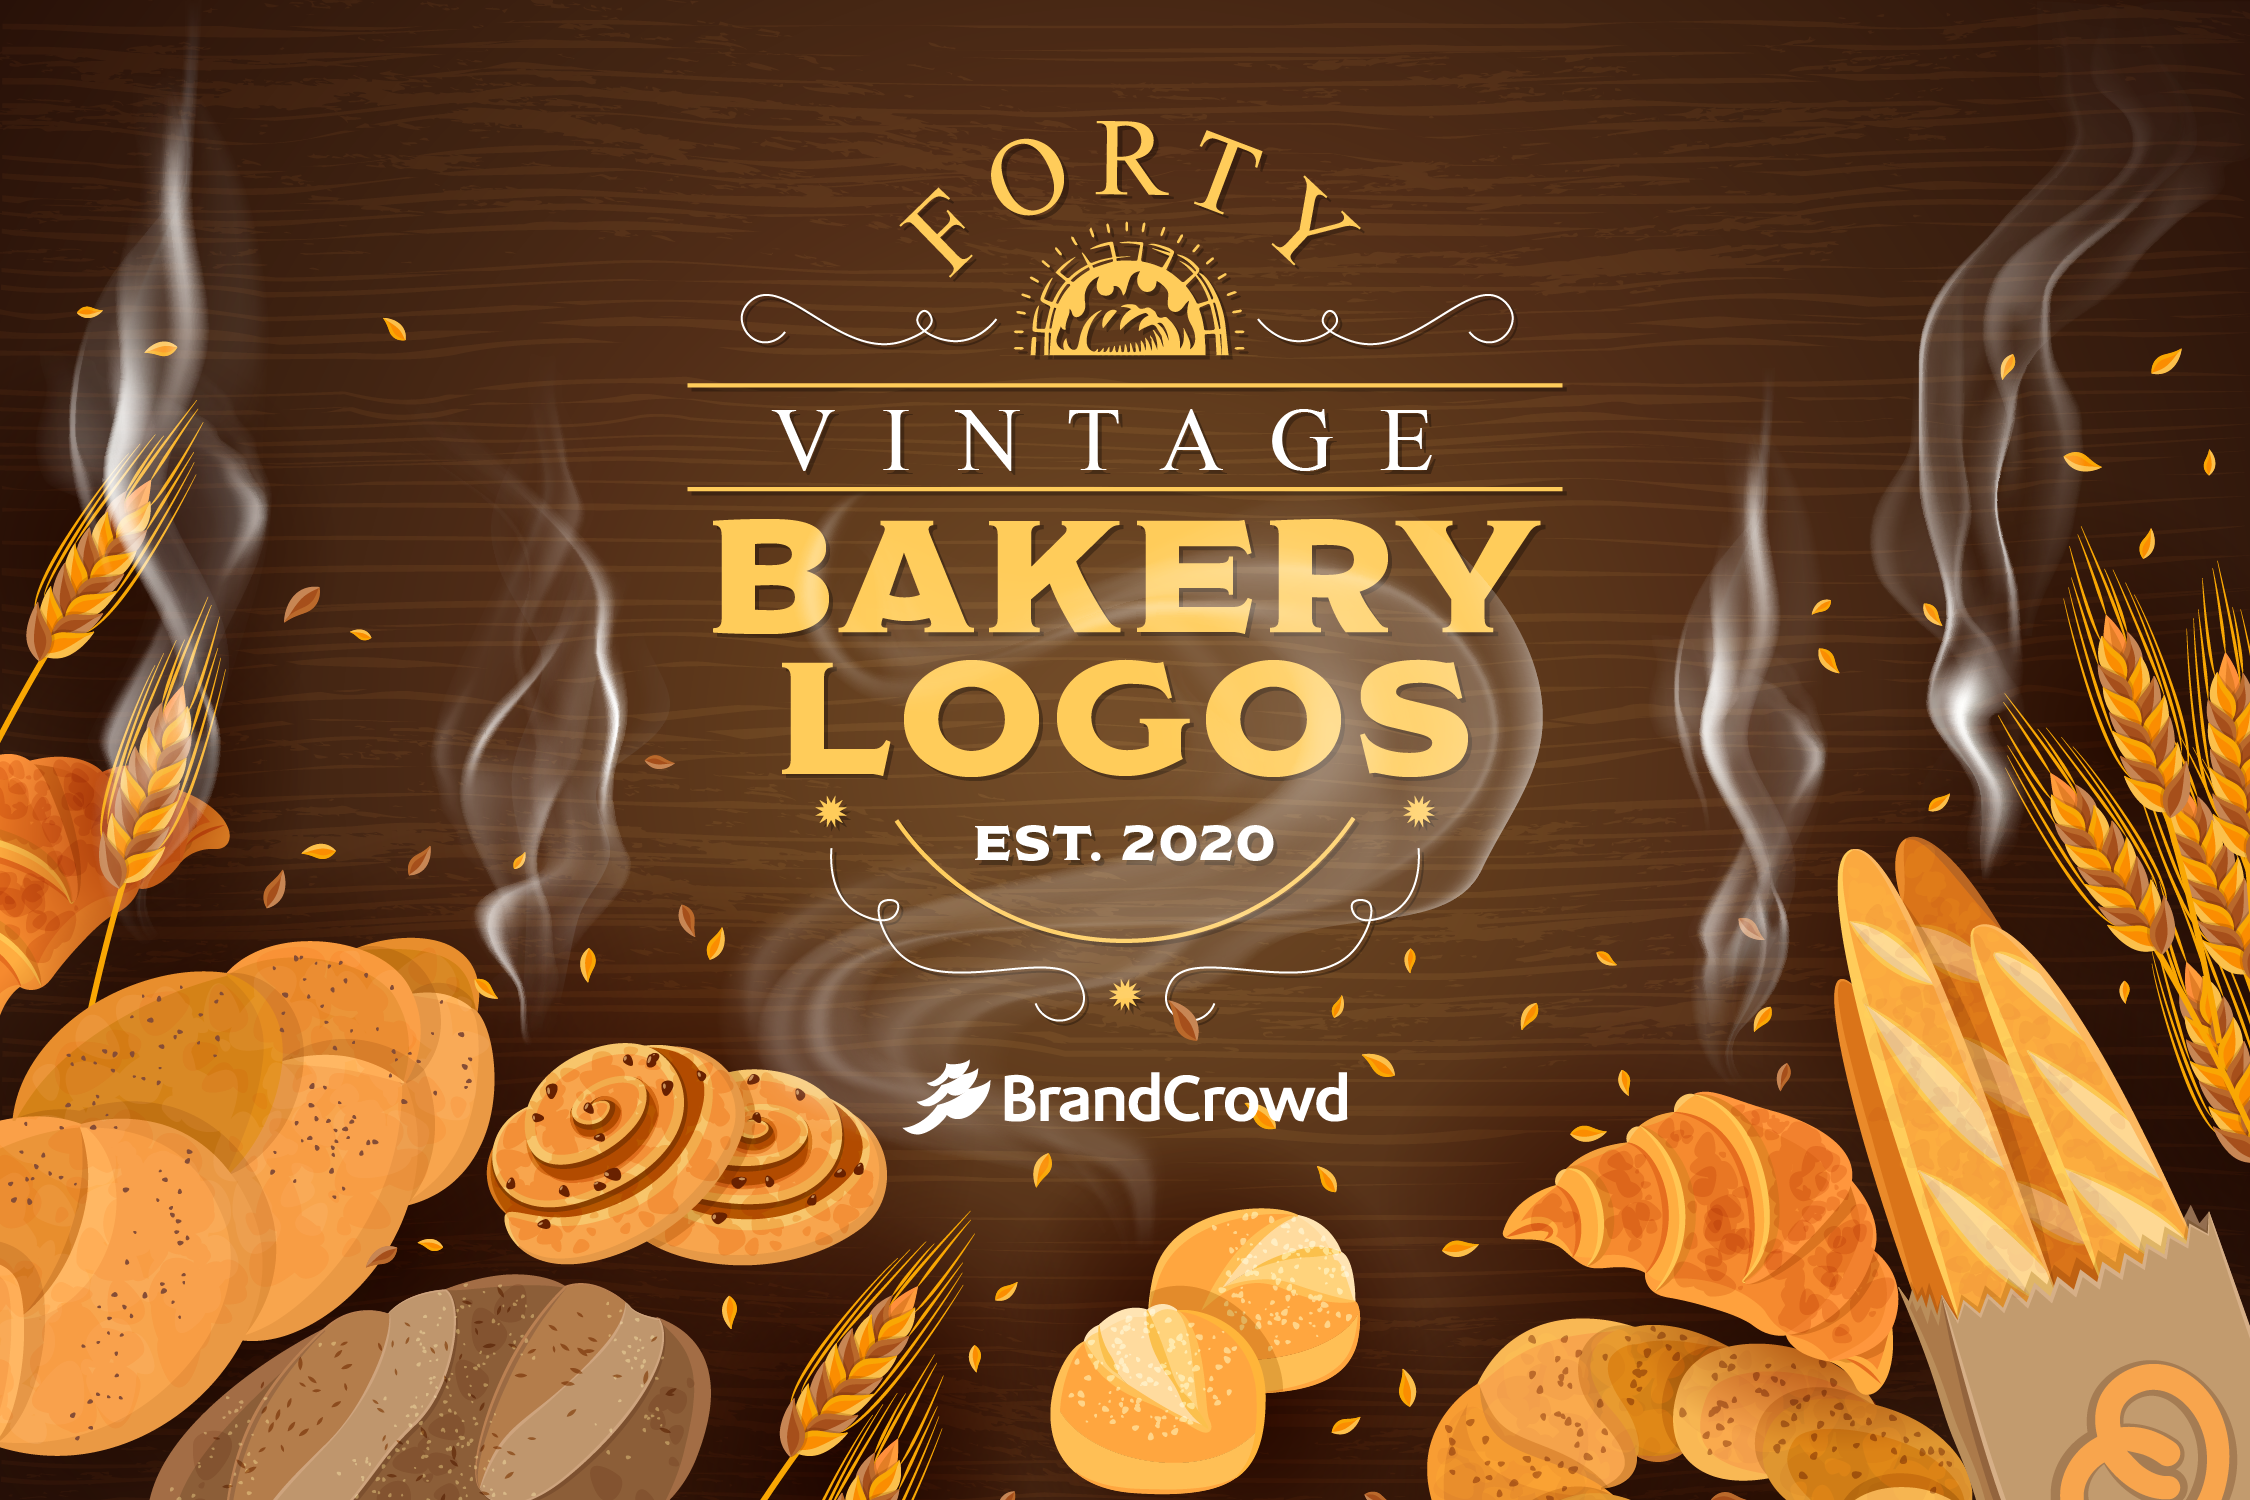 the-forty-vintage-bakery-logos-roundup-blog-header-features-a-vintage-typography-with-illustrations-of-various-baked-goods-against-a-brown-background